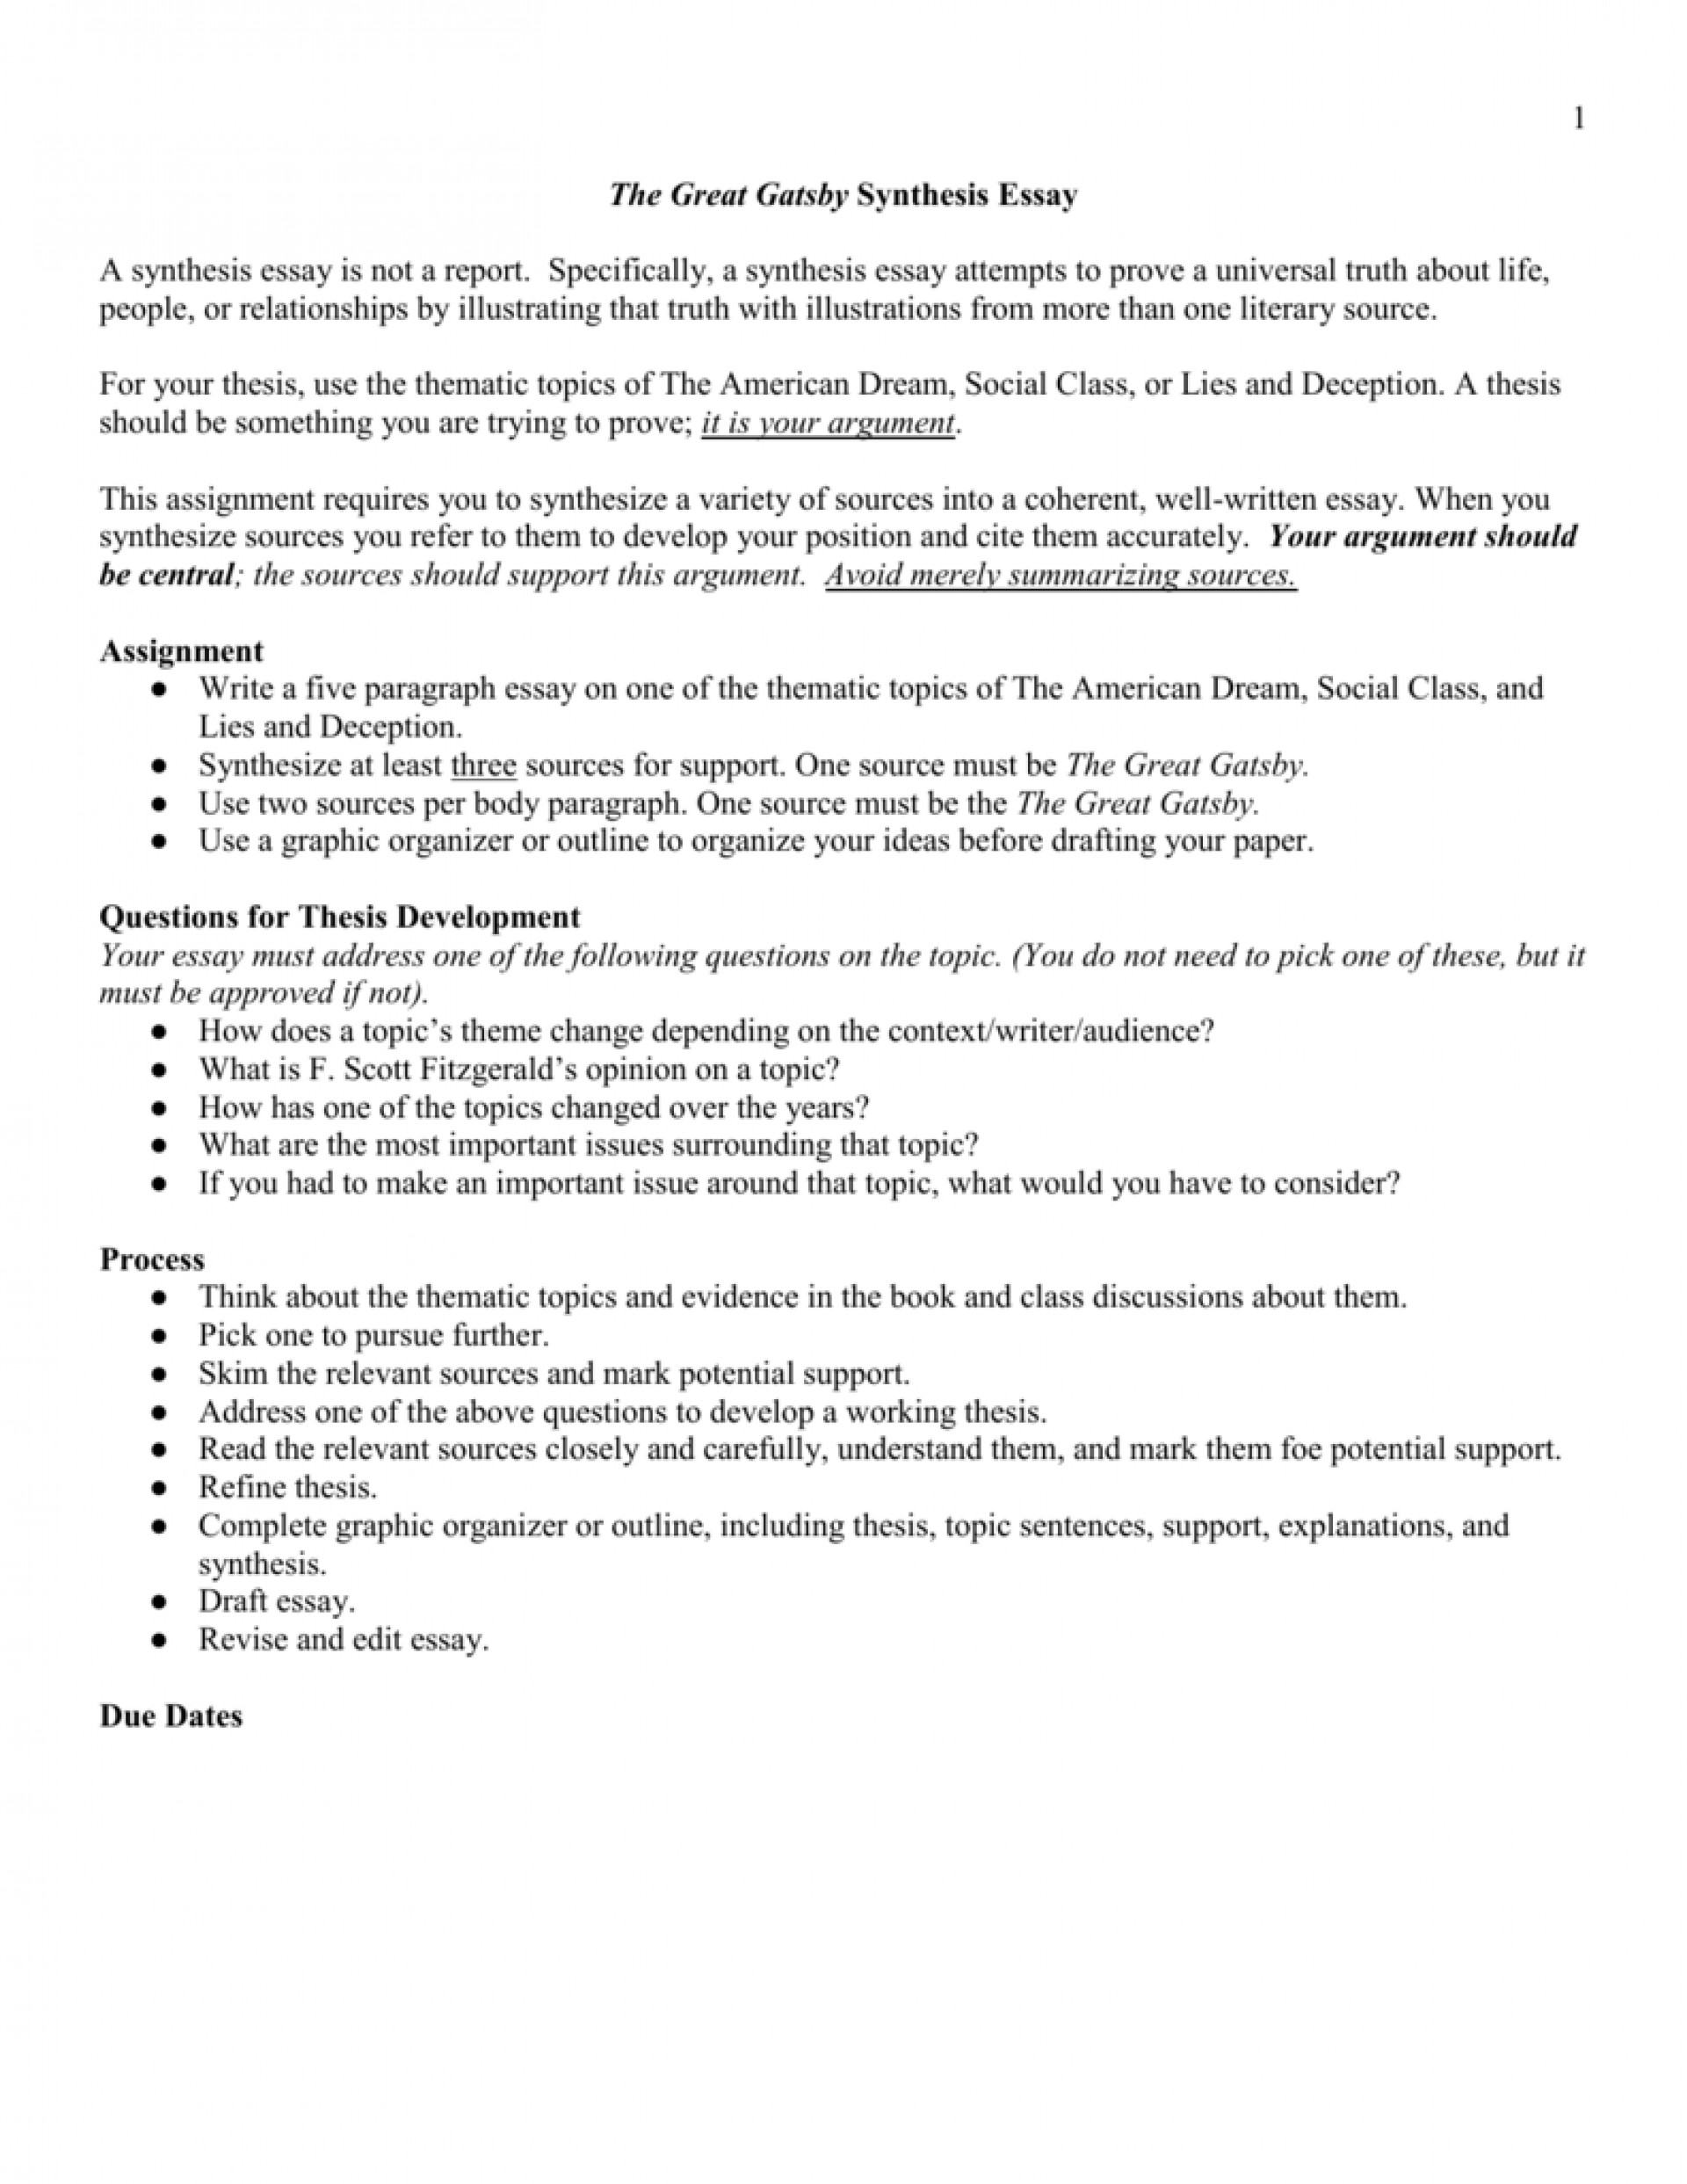 020 009200484 1 The Great Gatsby Essay Topics Exceptional Literary Question Chapter 1920